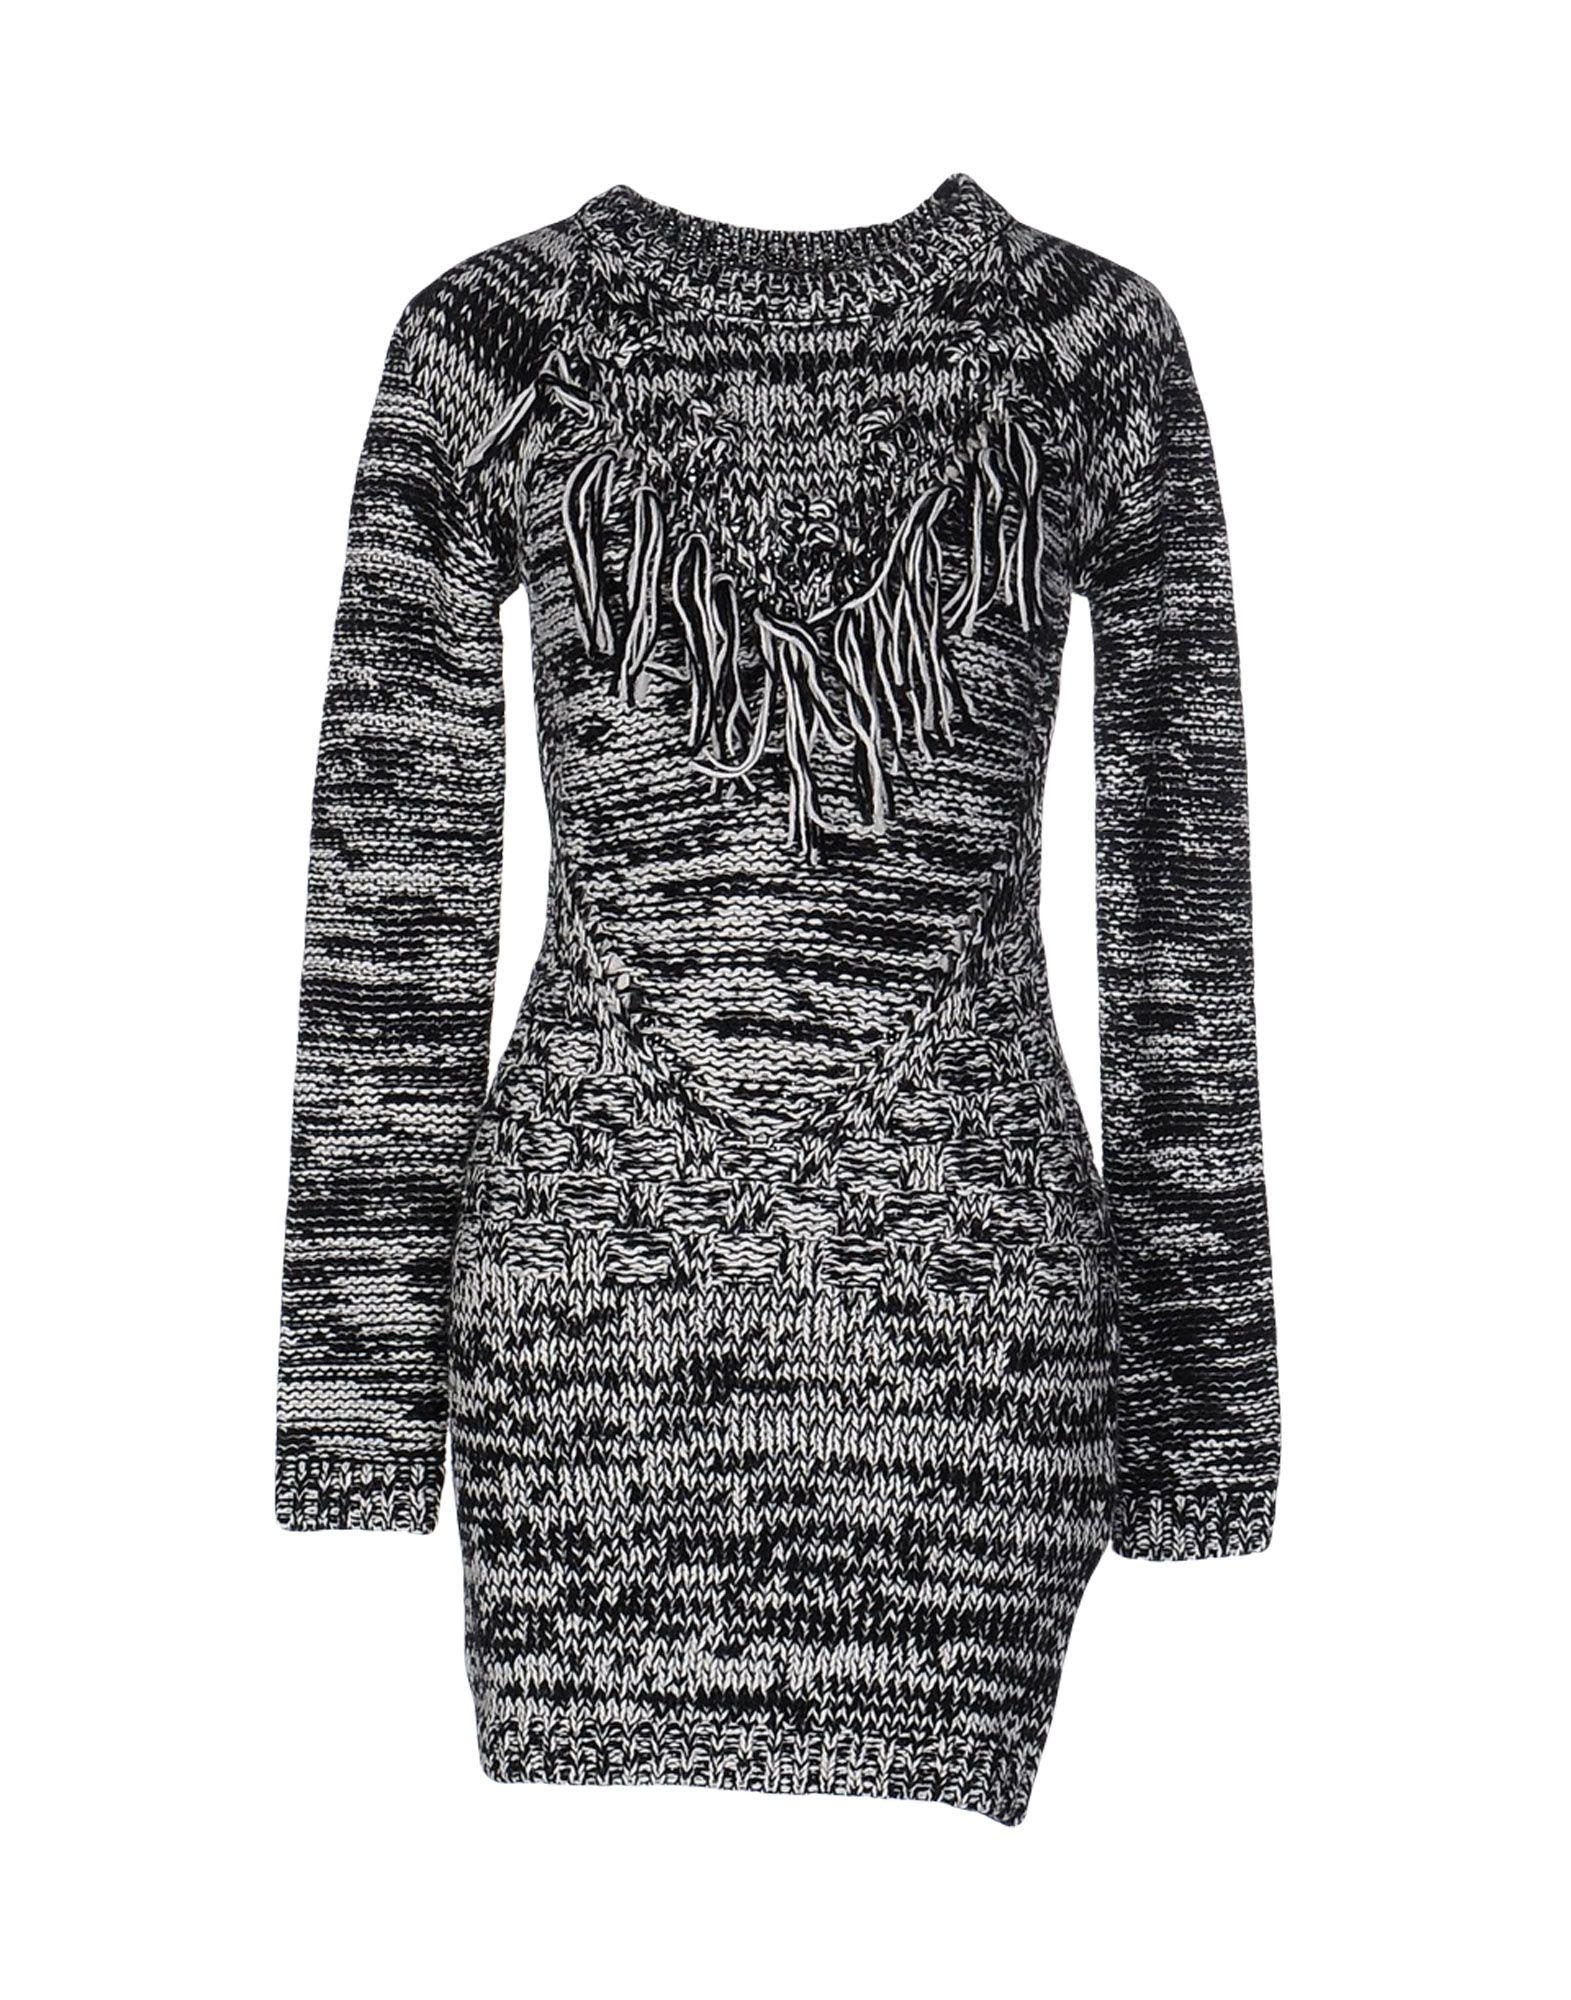 DRESS GALLERY PARTY SWEATER DRESS